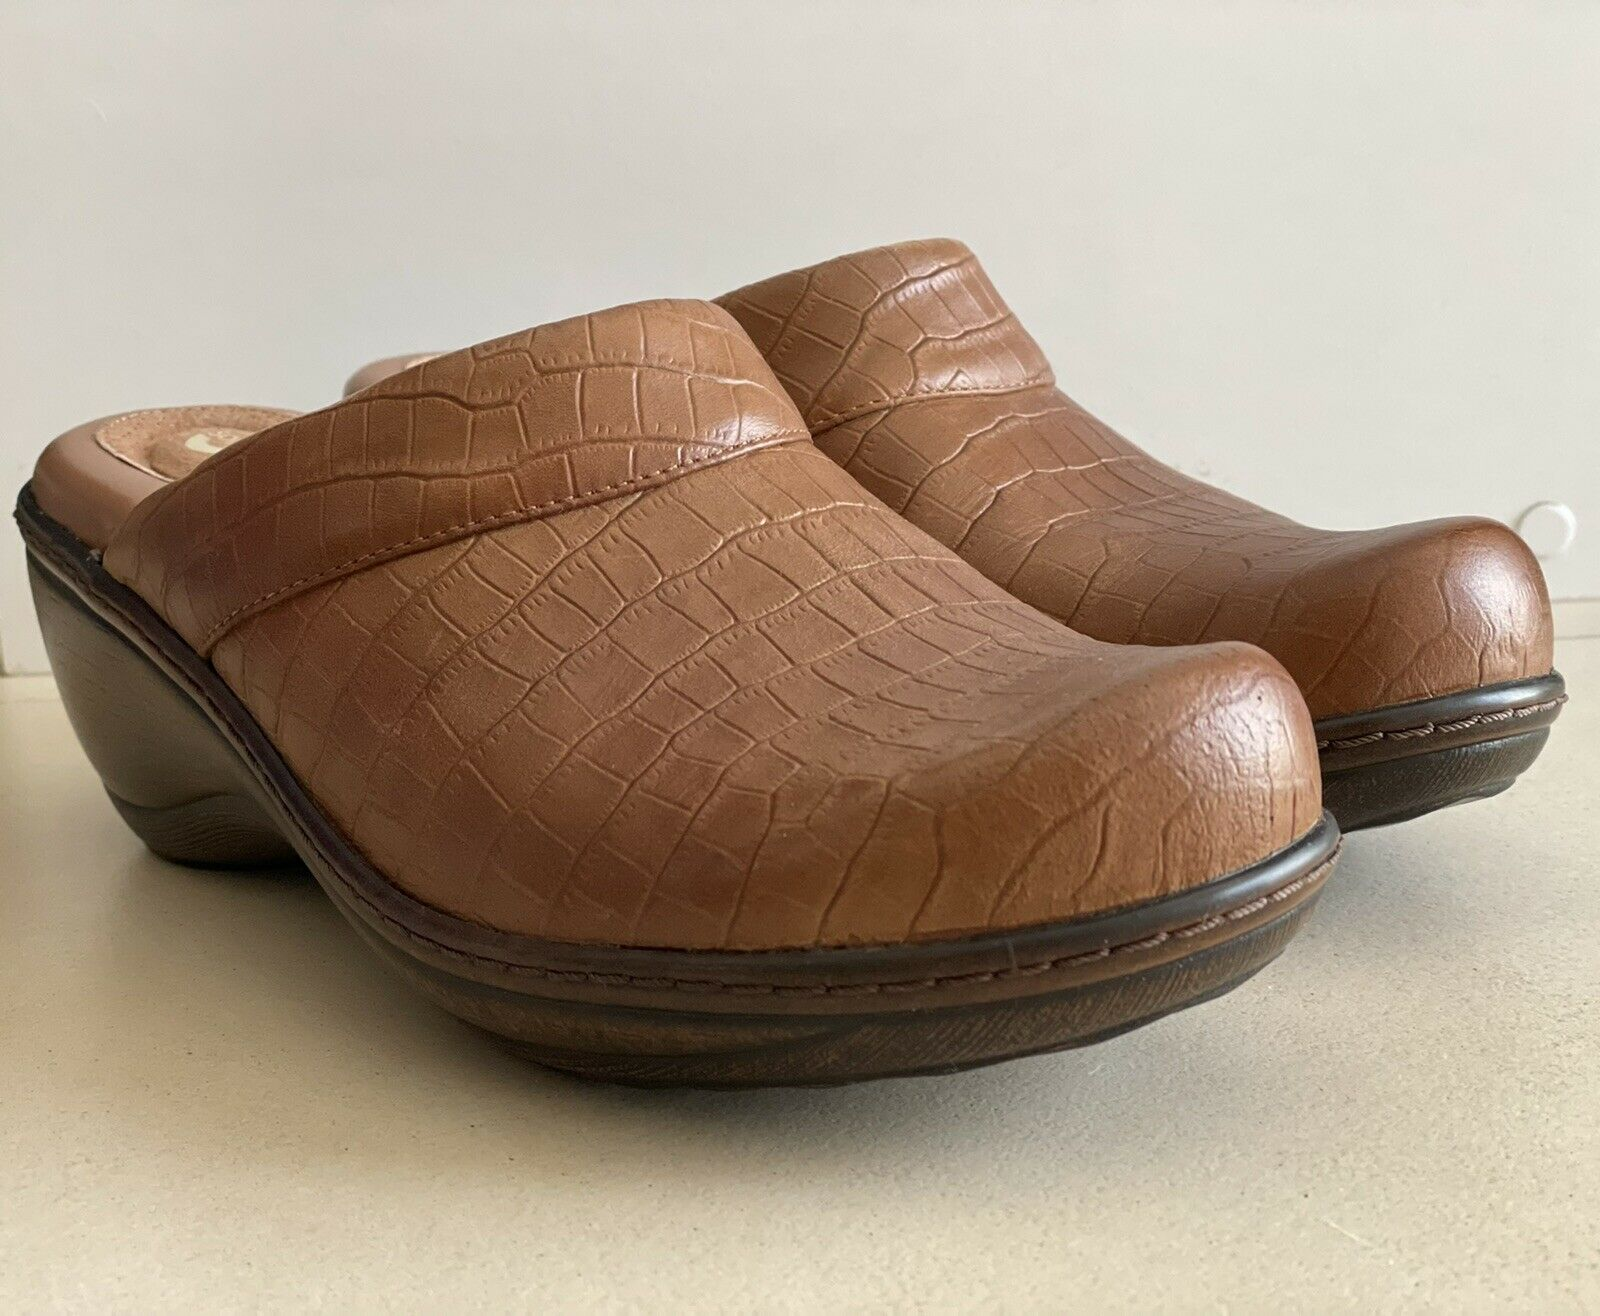 Softwalk Light Brown Mules Clogs Wedge Slip on Comfort 8 Womens Leather NEW